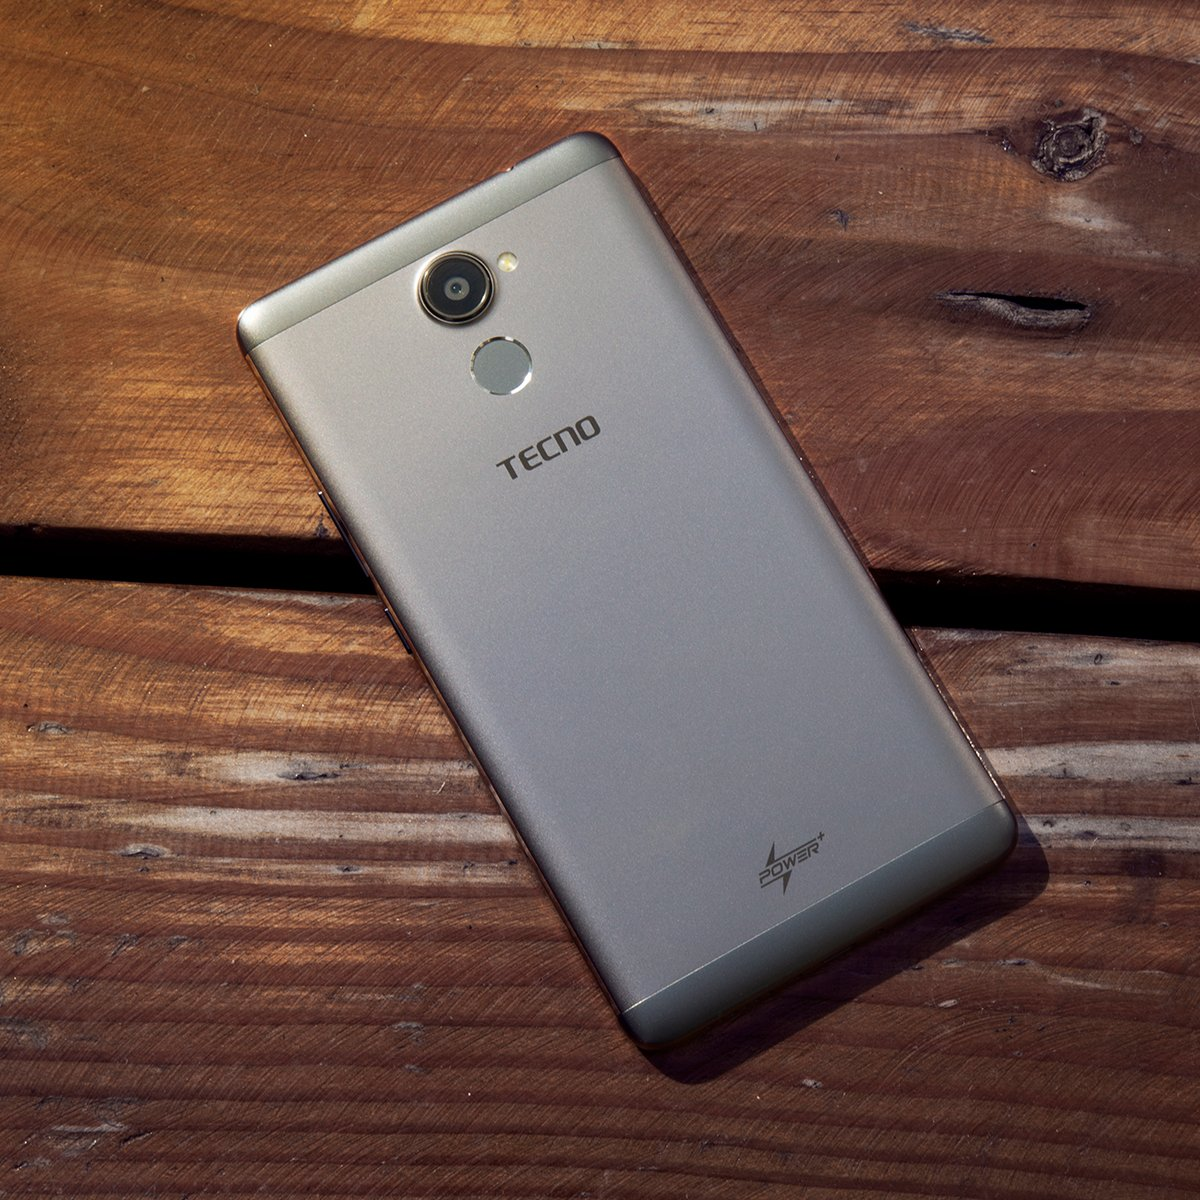 Tecno L9 Plus Comes With A 5000mah Battery For 72hrs On